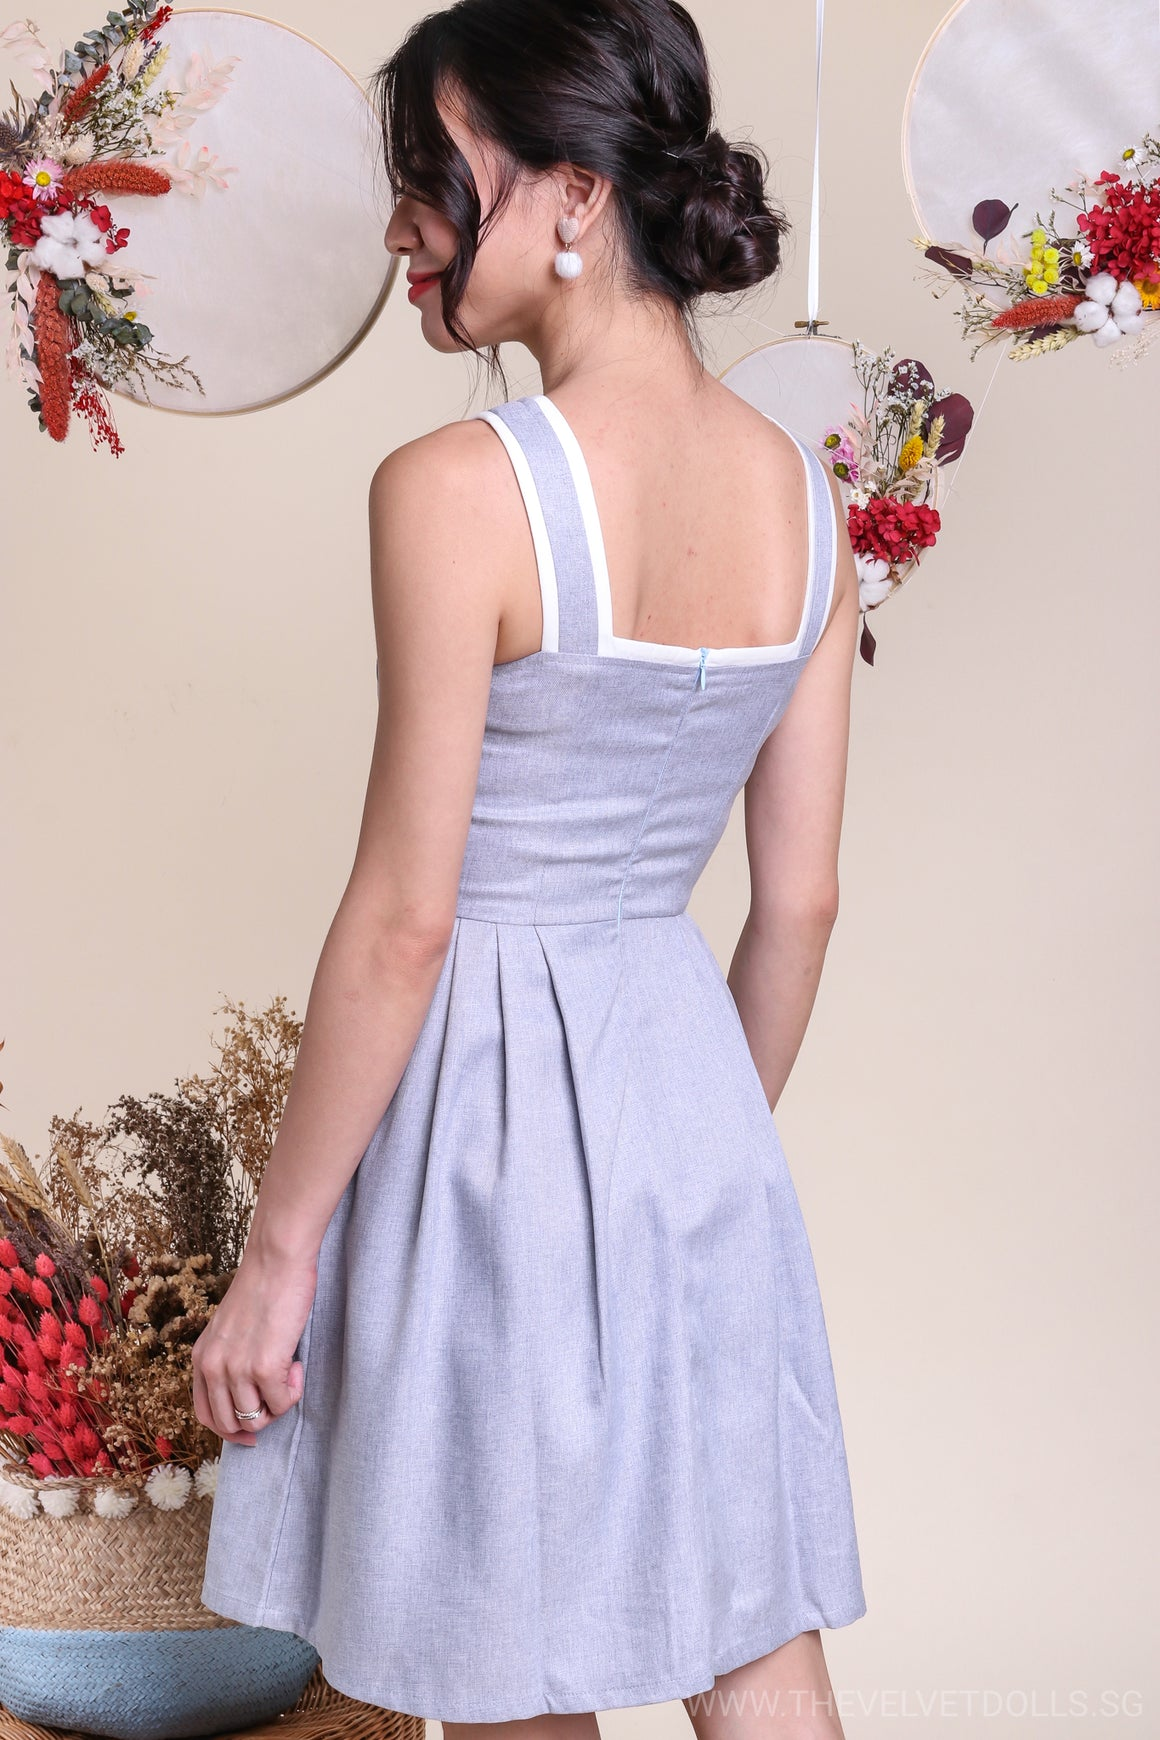 Poetic Trimming Dress in Blue